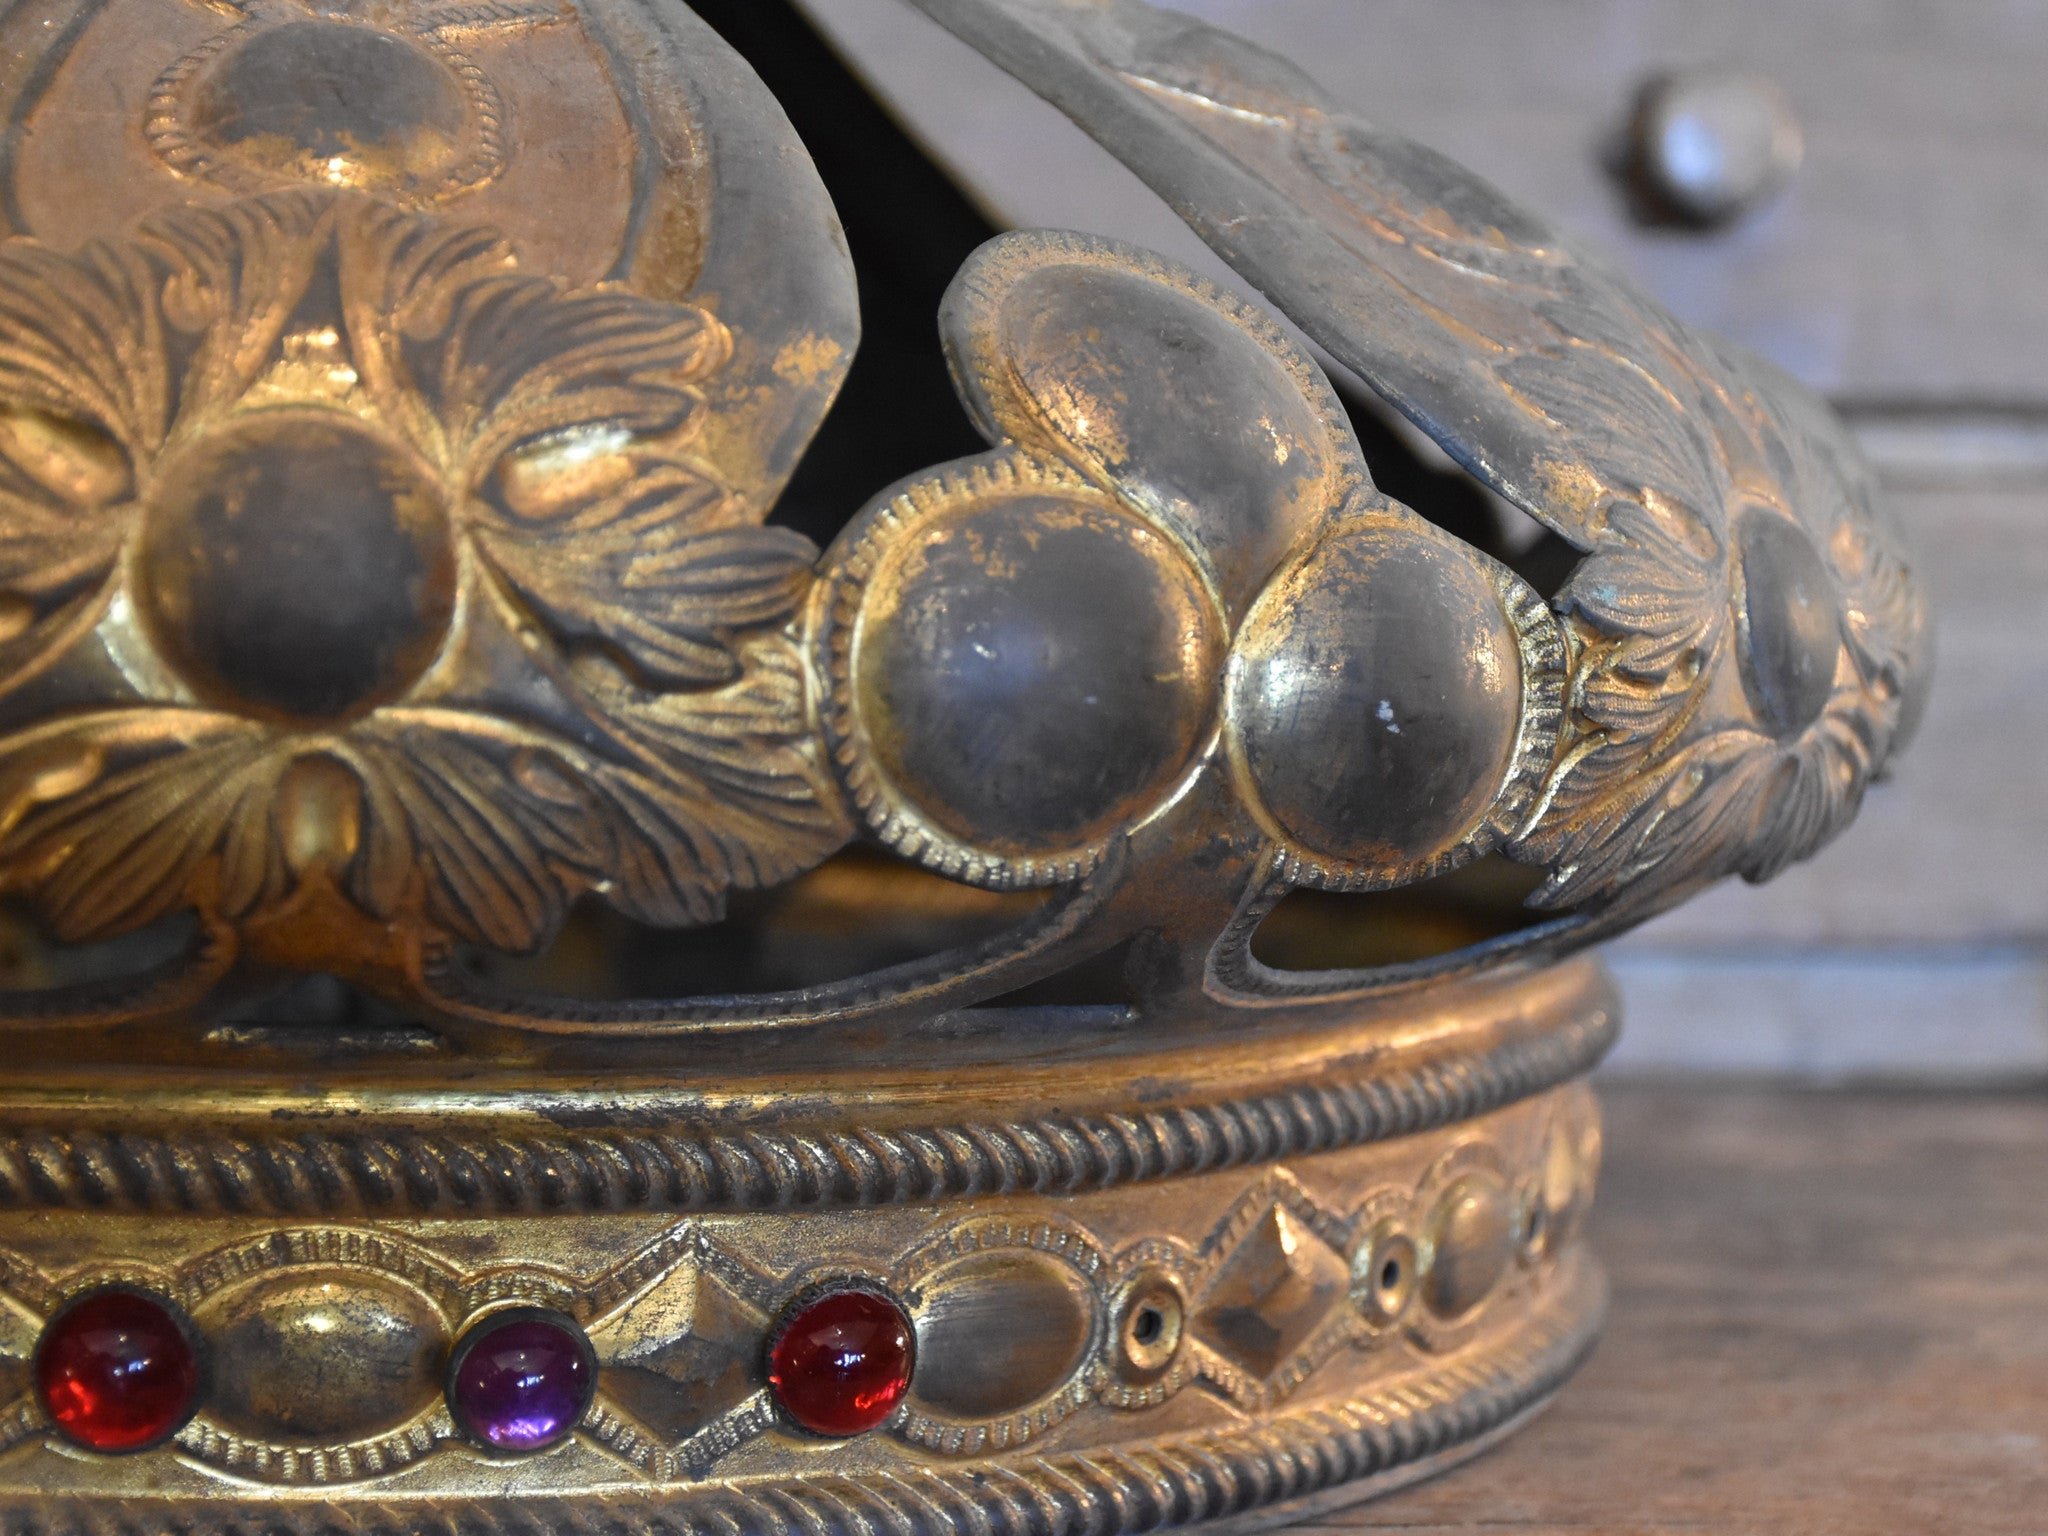 Oversized 18th century crown